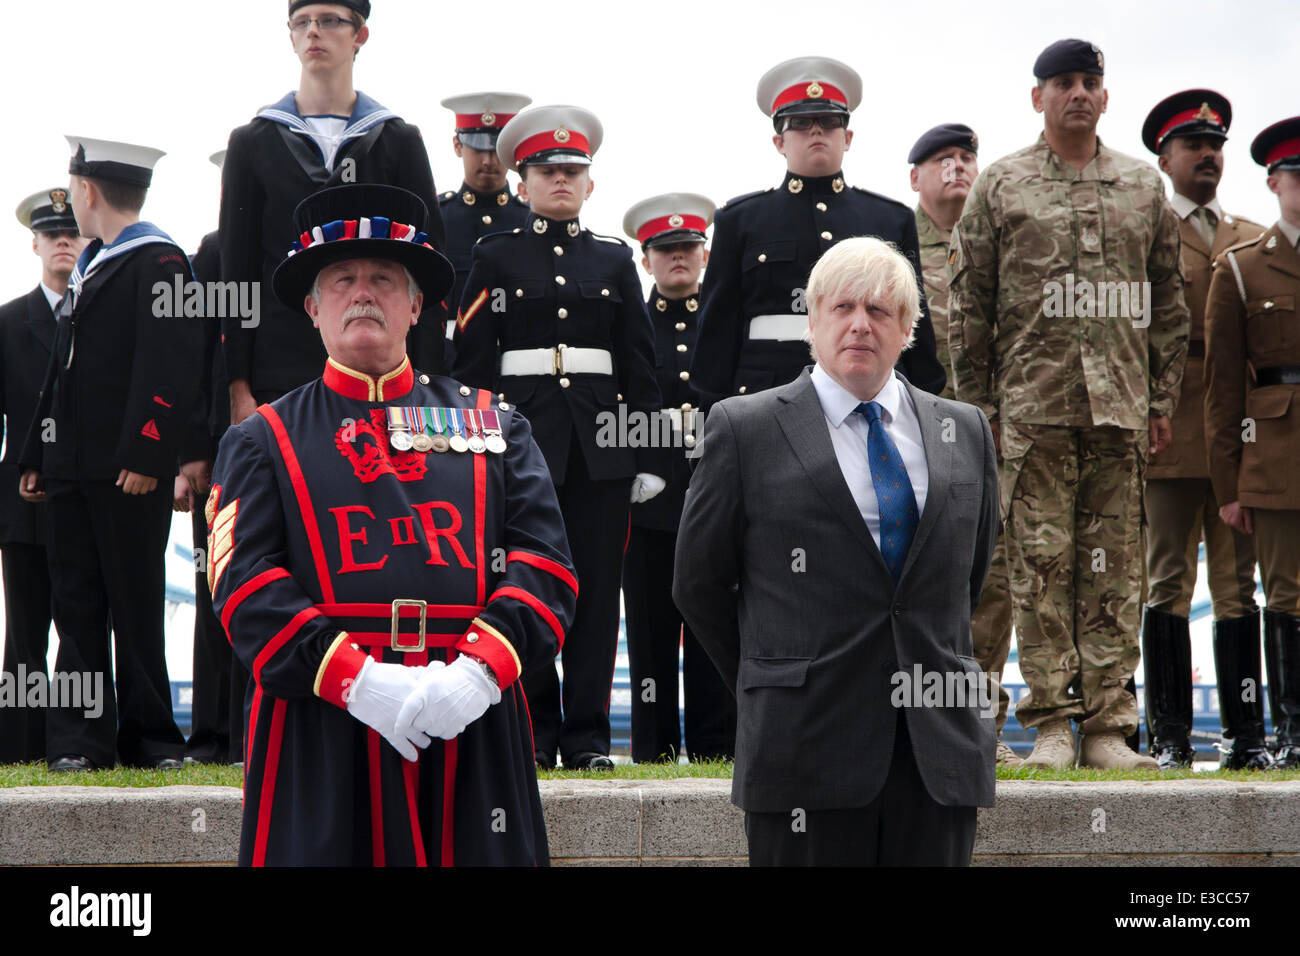 London, UK. 23rd June, 2014. M ayor of London Boris Johnson joins a Yeoman Warder and members and veterans of the - Stock Image